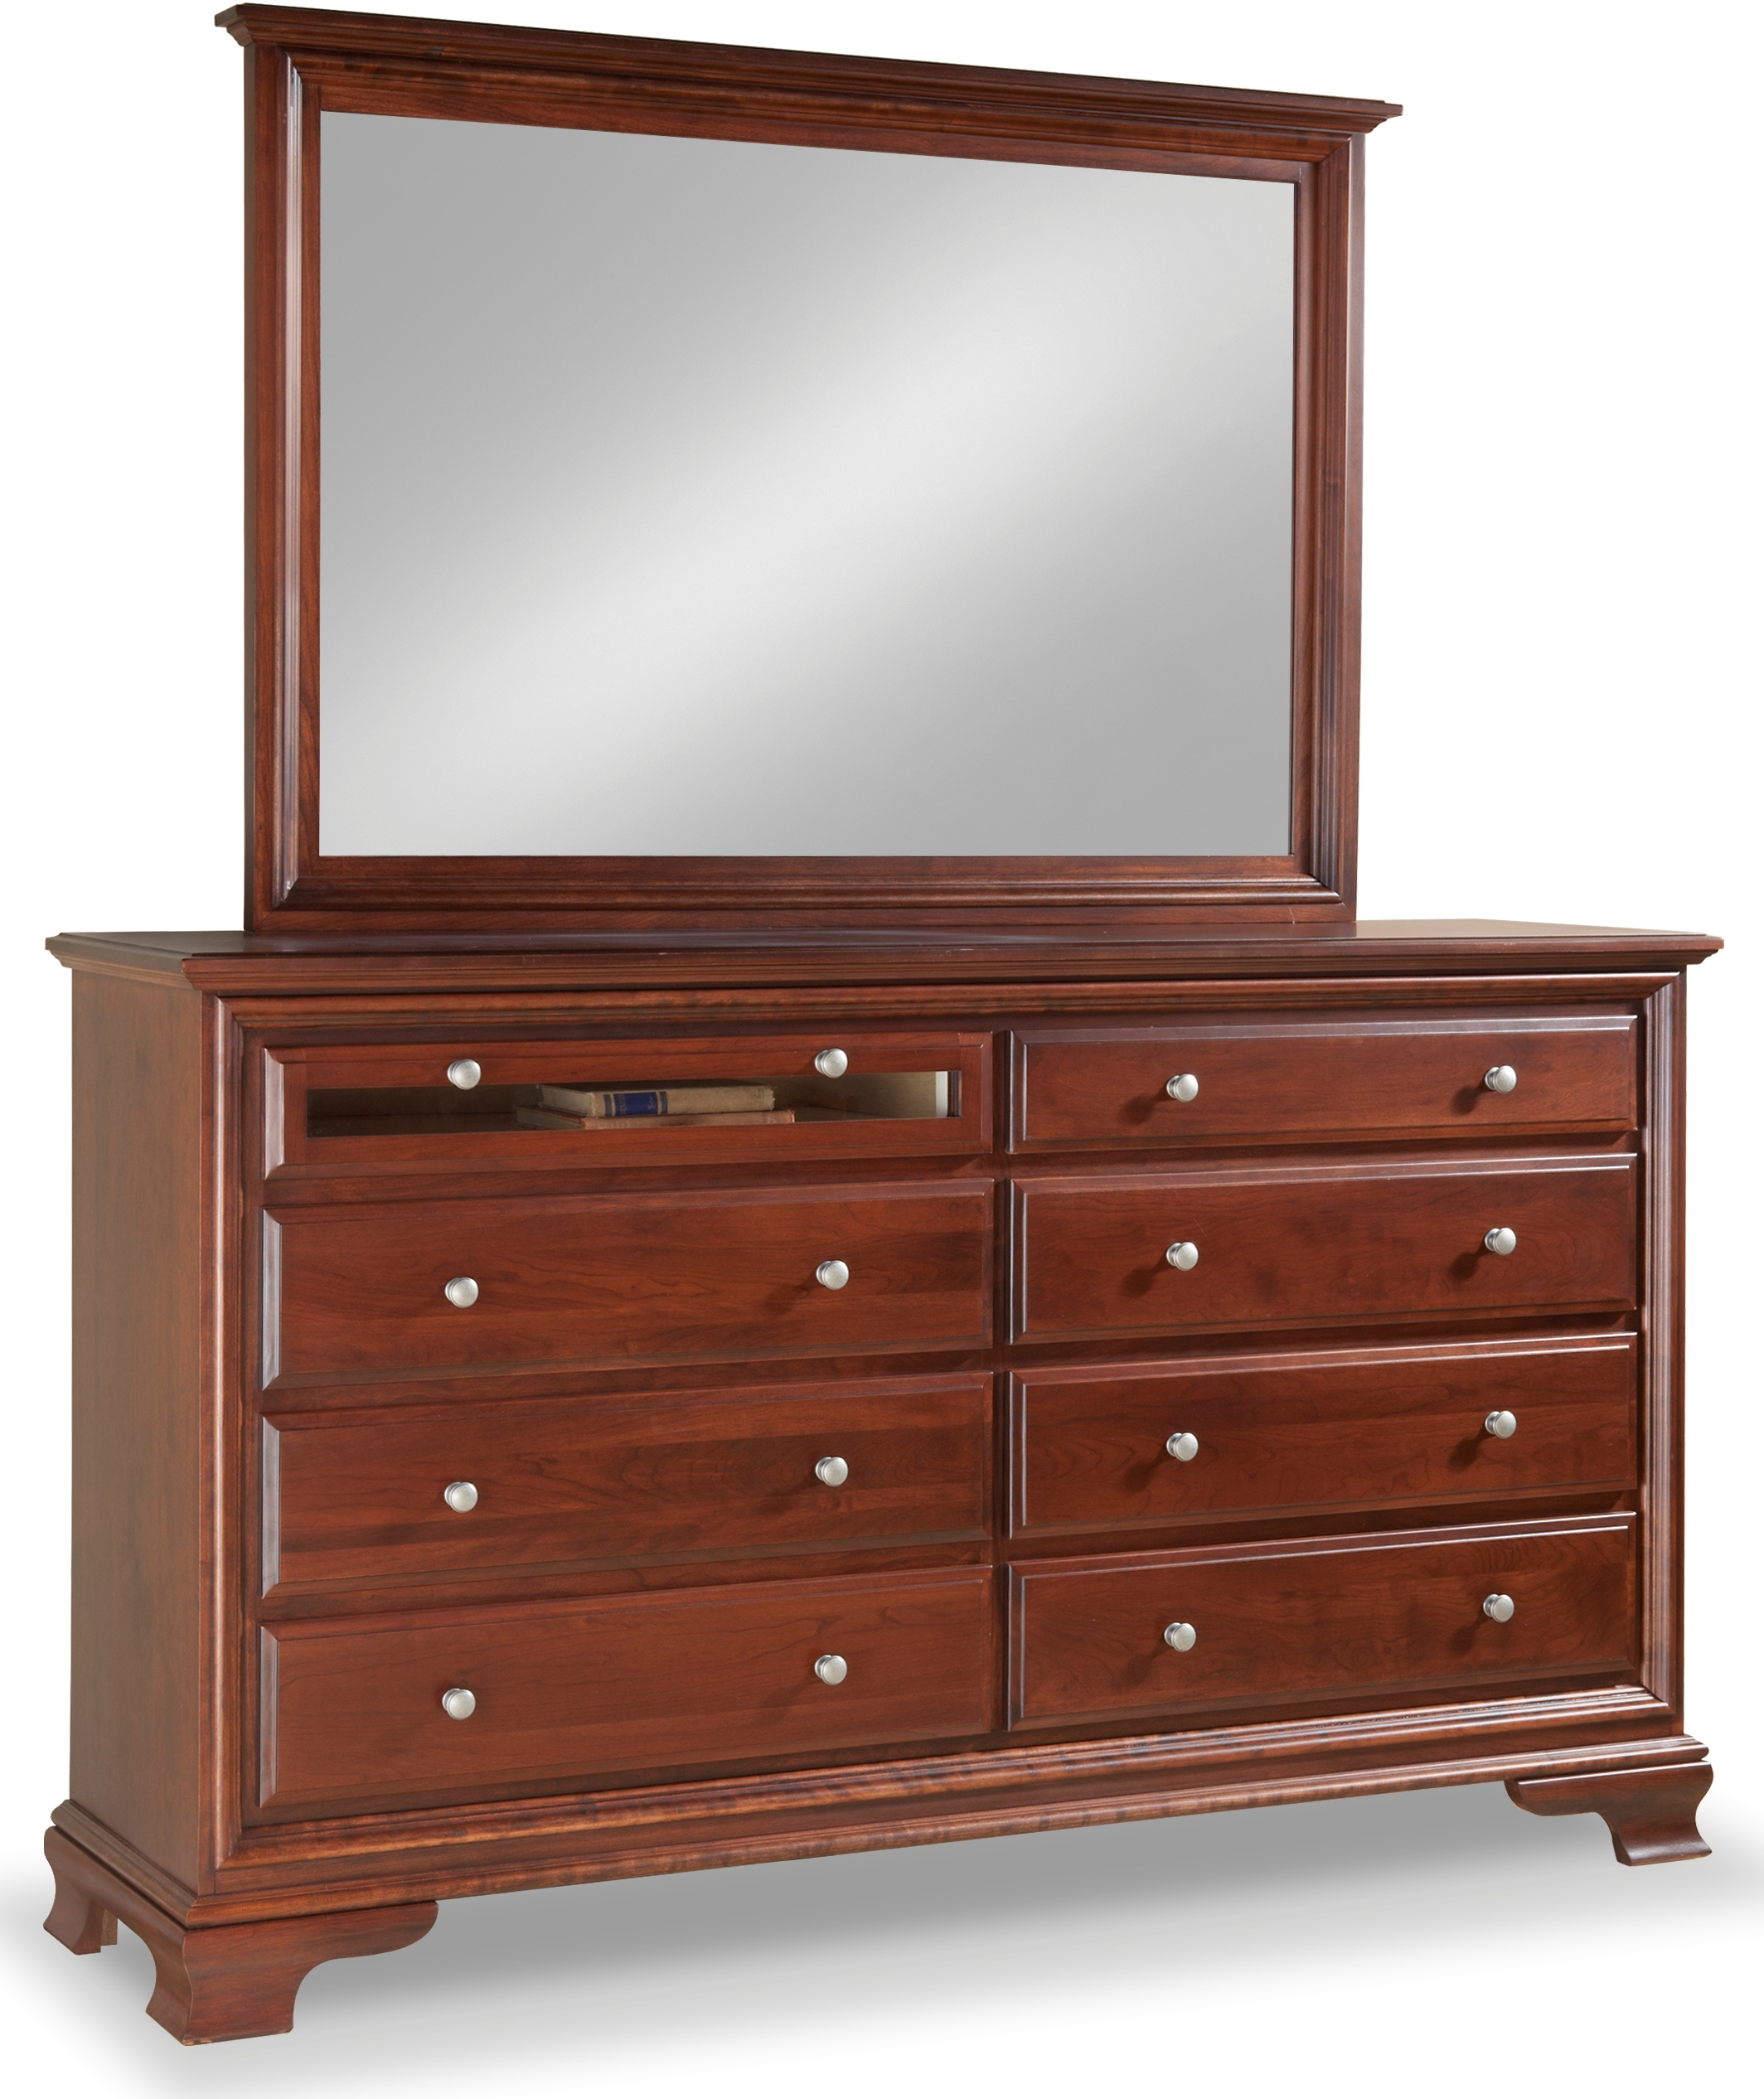 Classic 8 Drawer Double Dresser W Tall Wide Mirror Media Drawer By Daniel S Amish Collection 35 4038 39 4021 88 9377 Willis Furniture Mattress